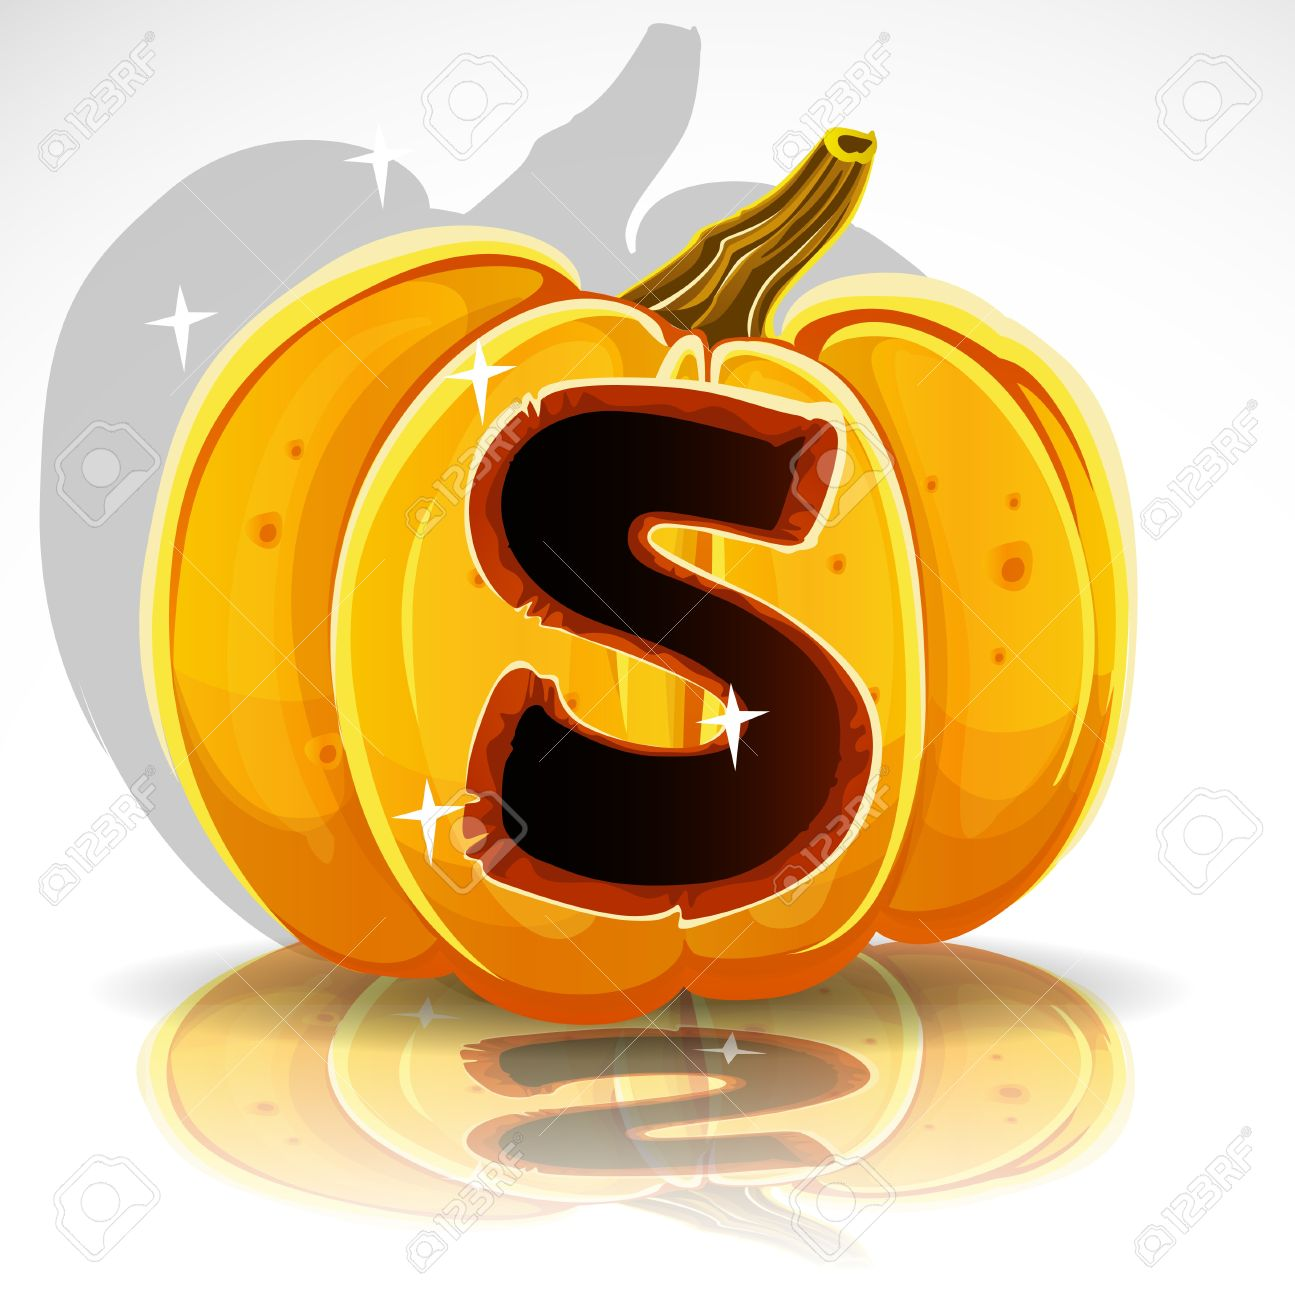 Happy Halloween Font Cut Out Pumpkin Letter S Royalty Free Cliparts